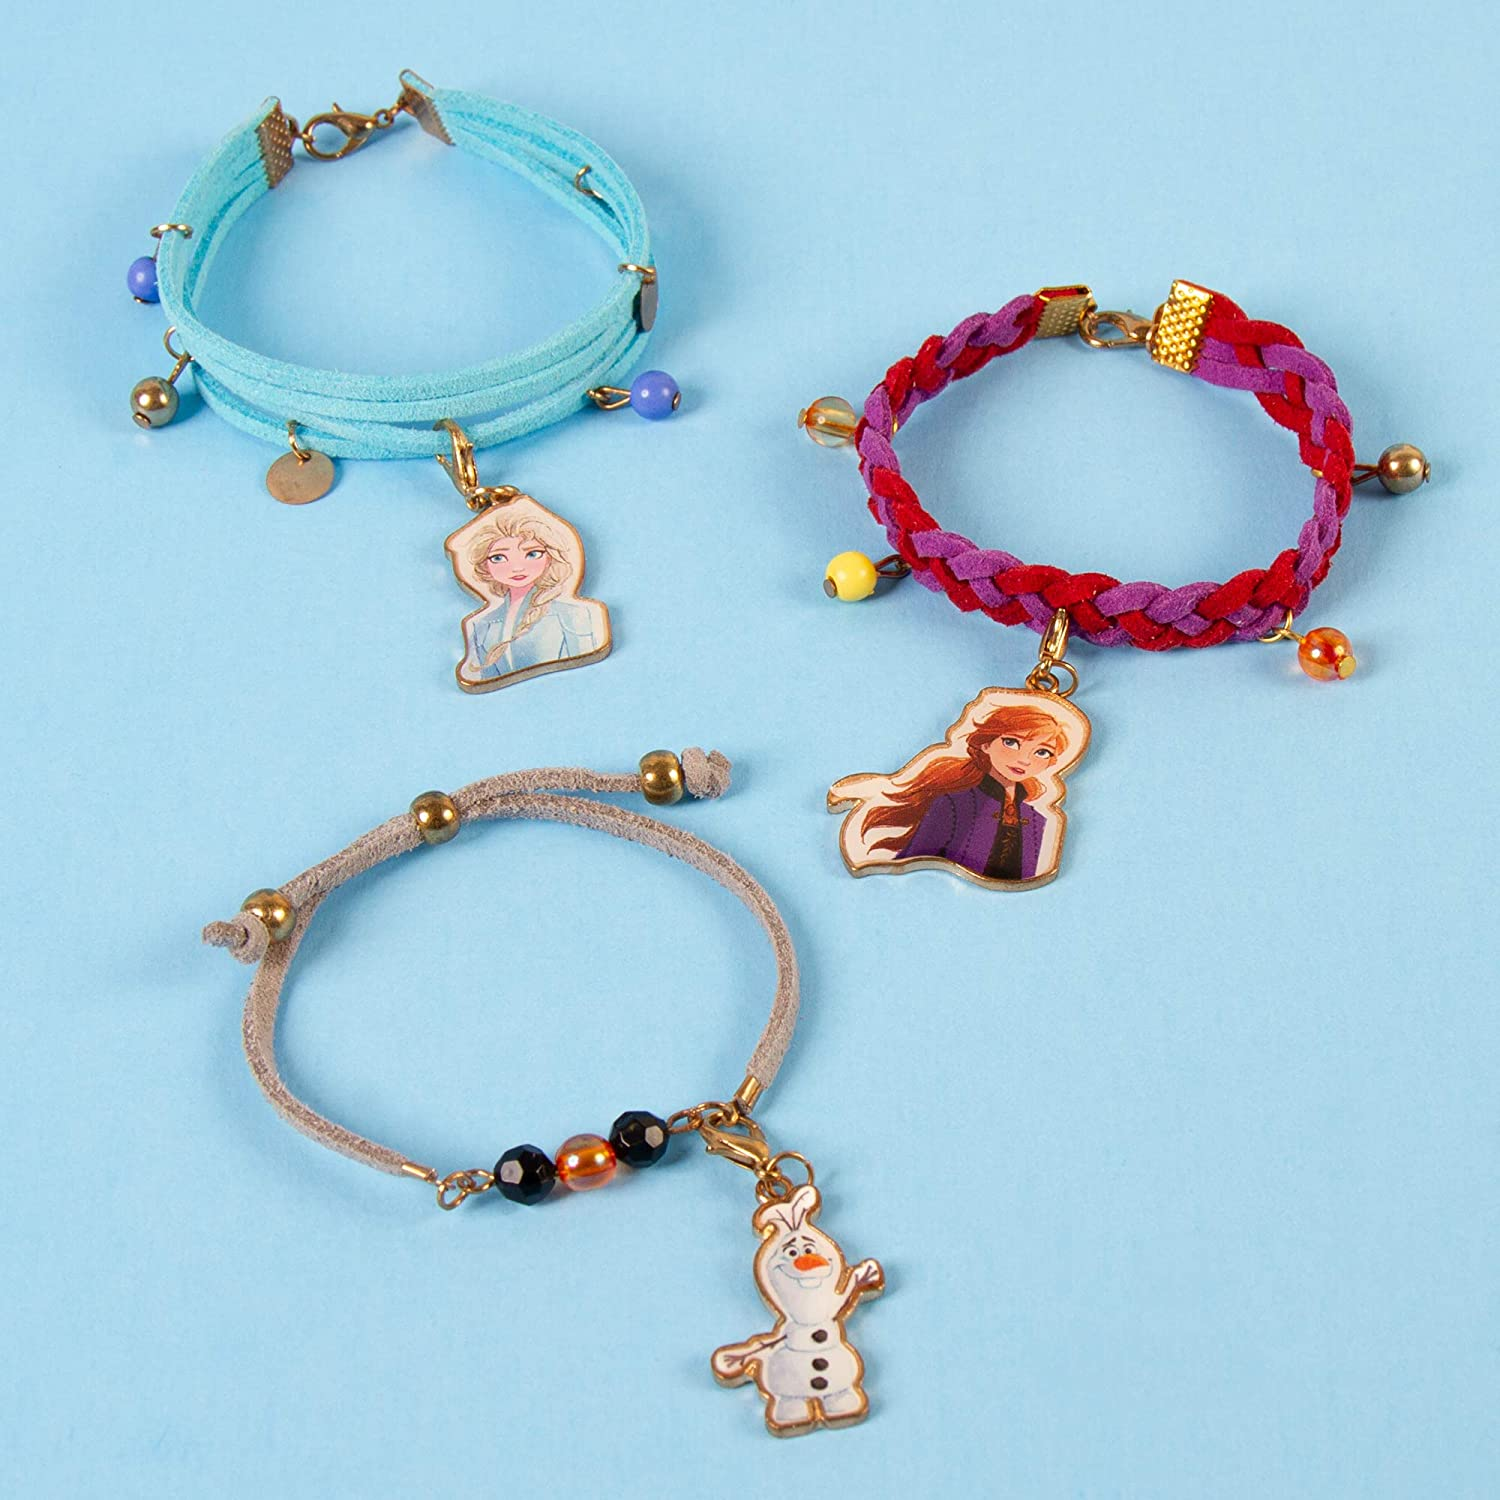 Design and Create Girls Bracelets with Frozen 2 Charms Faux Suede and More Make It Real Disney Inspired DIY Charm Bracelet Making Kit for Girls Disney Frozen 2 Elements Jewelry Set Beads